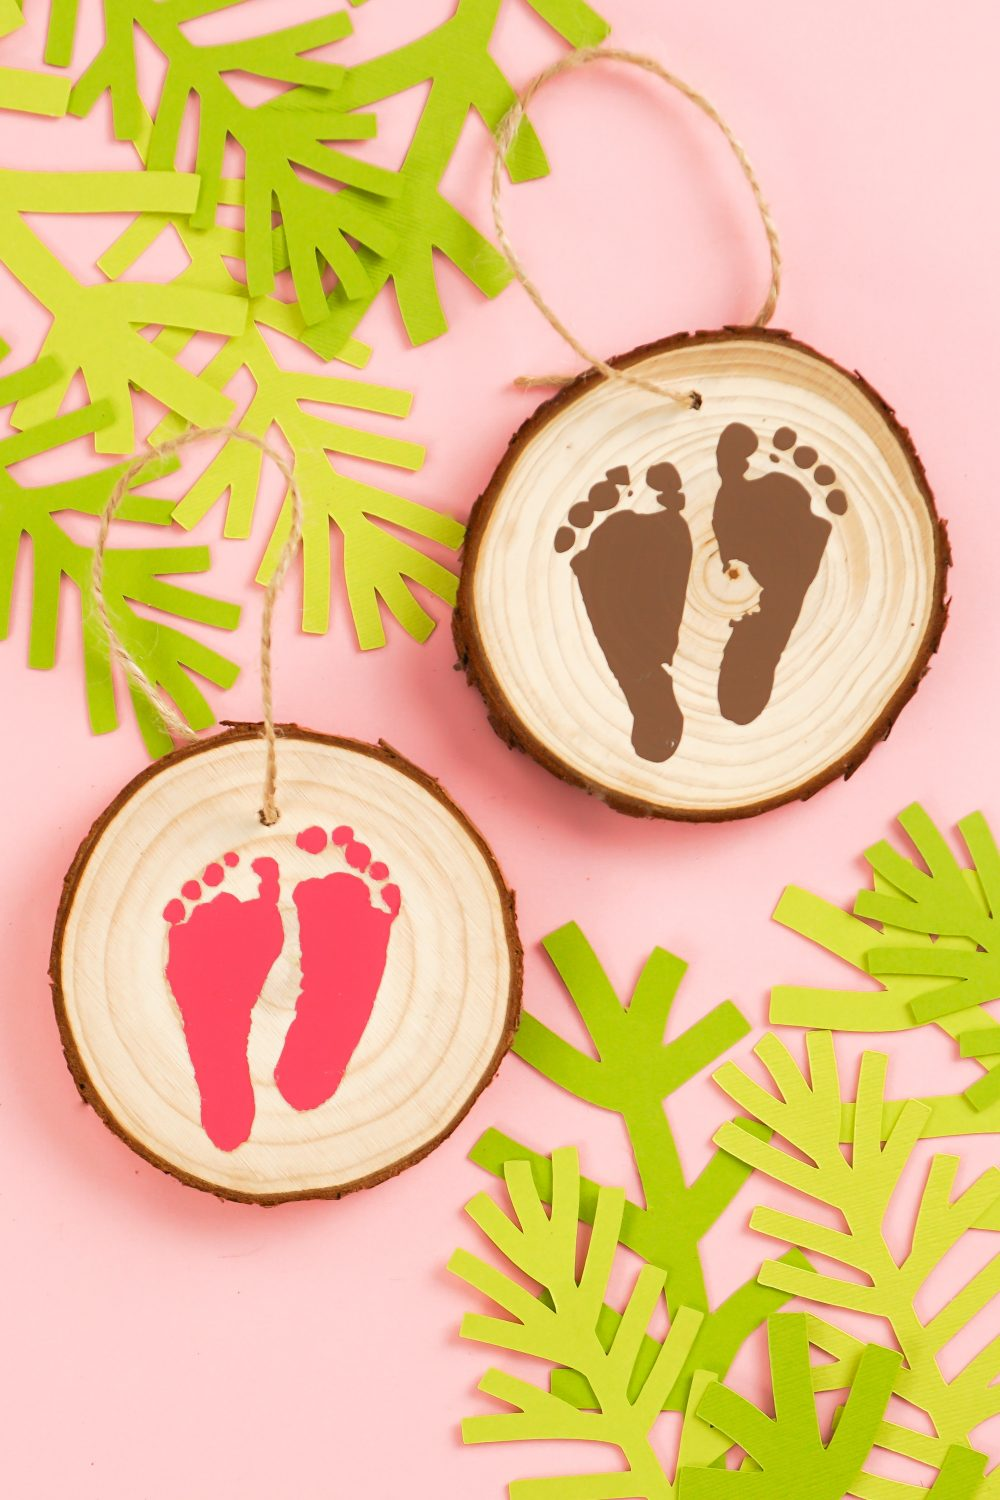 Closeup of footprint ornaments on pink background.